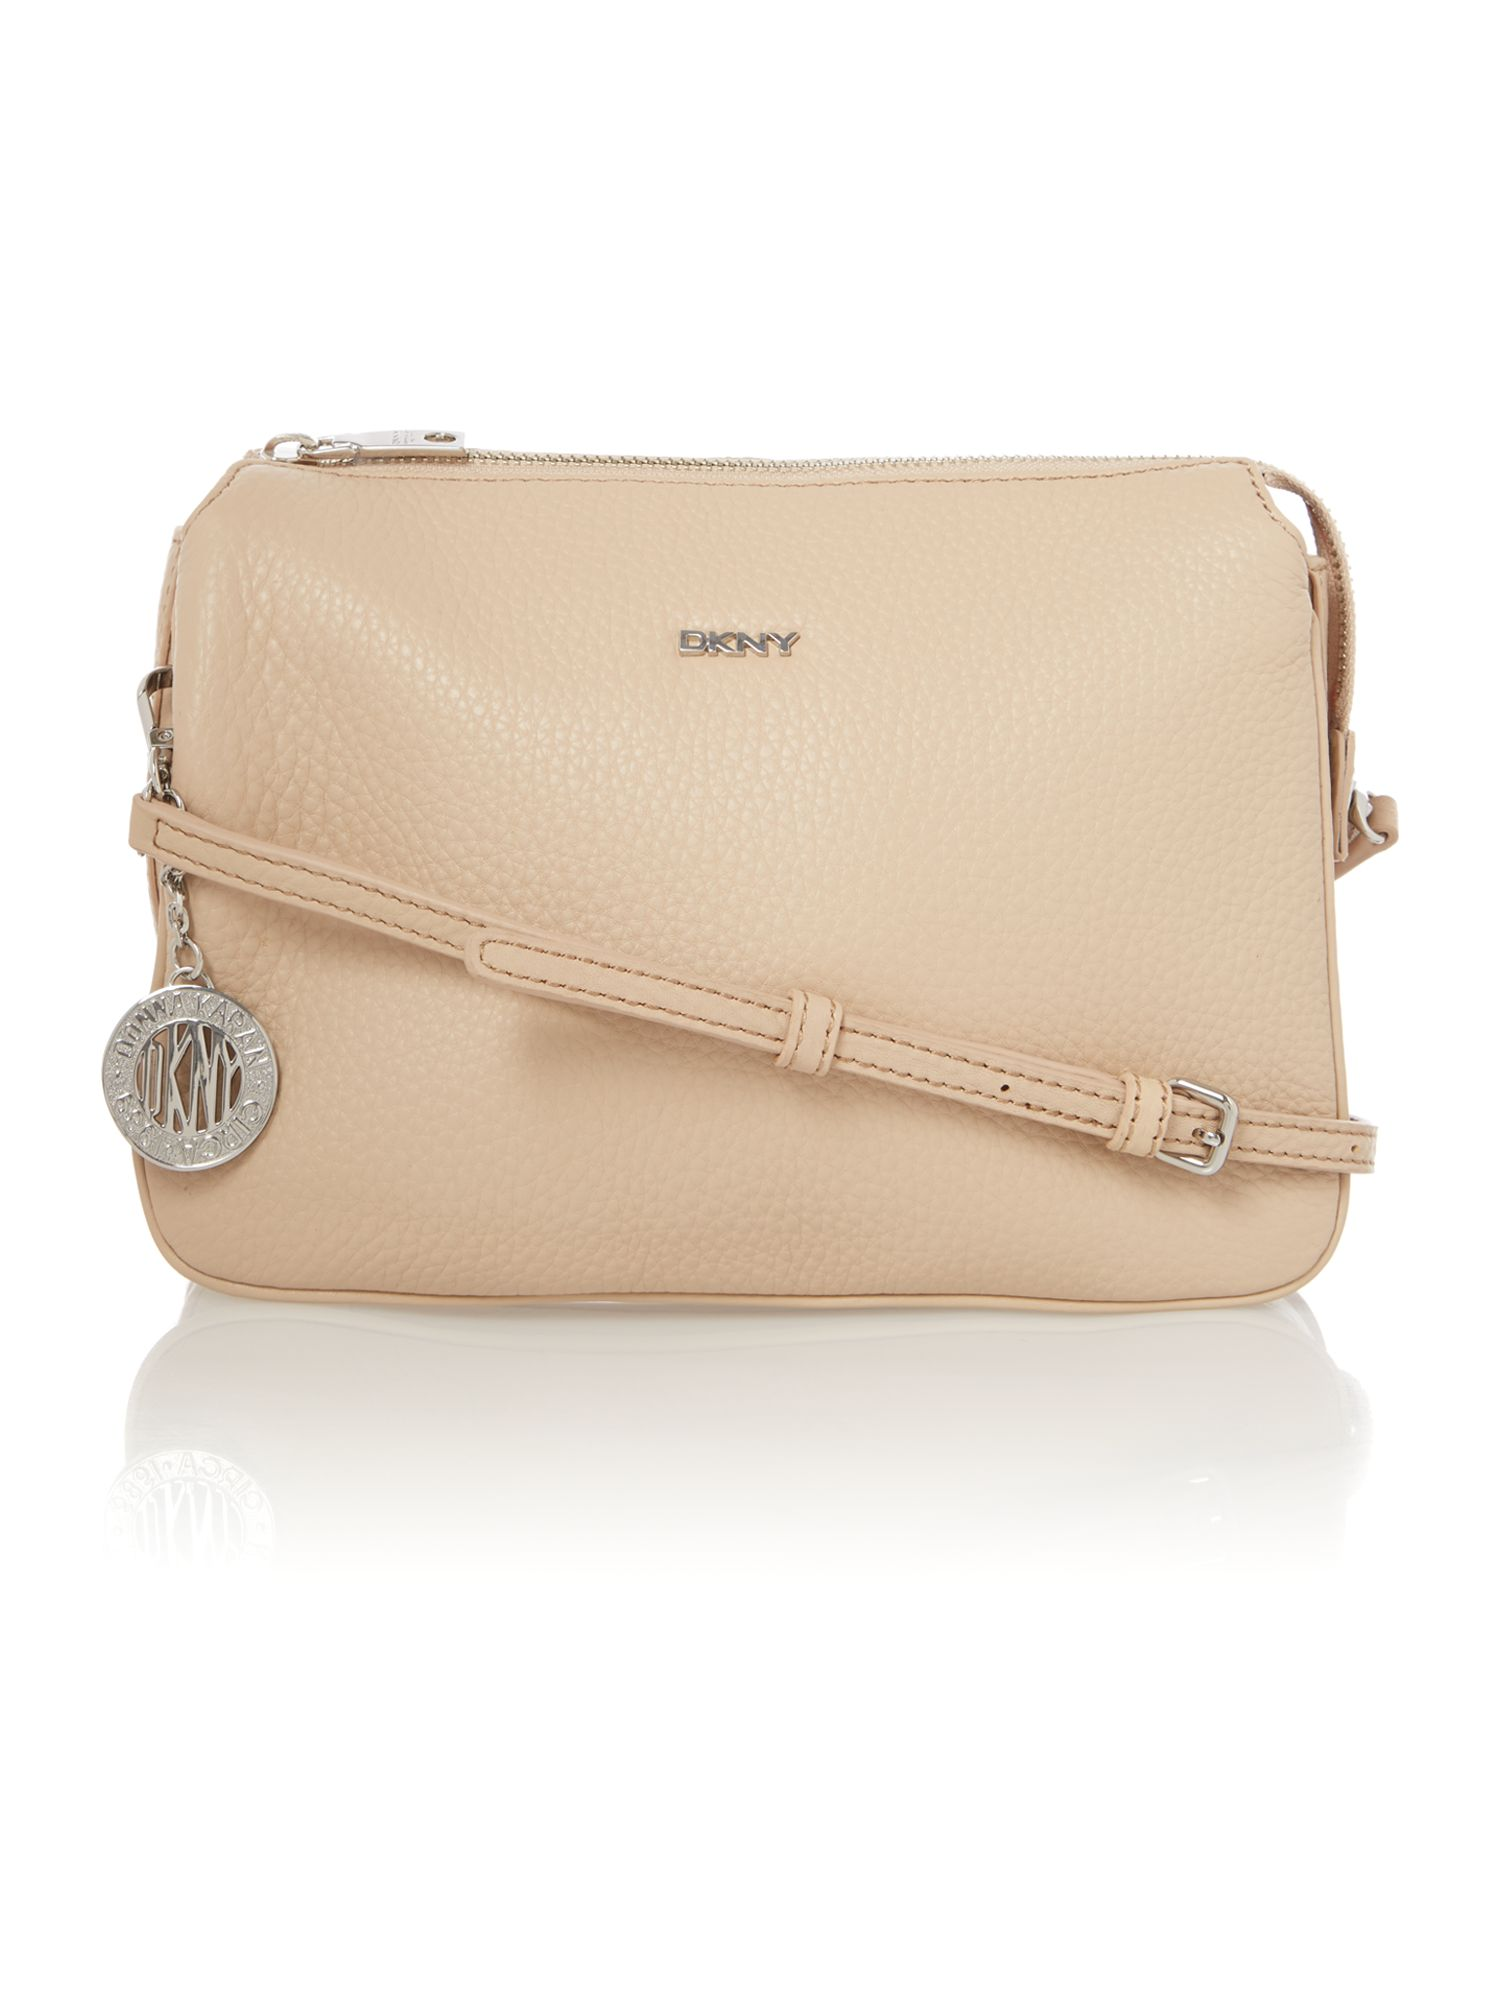 Tribeca neutral crossbody bag